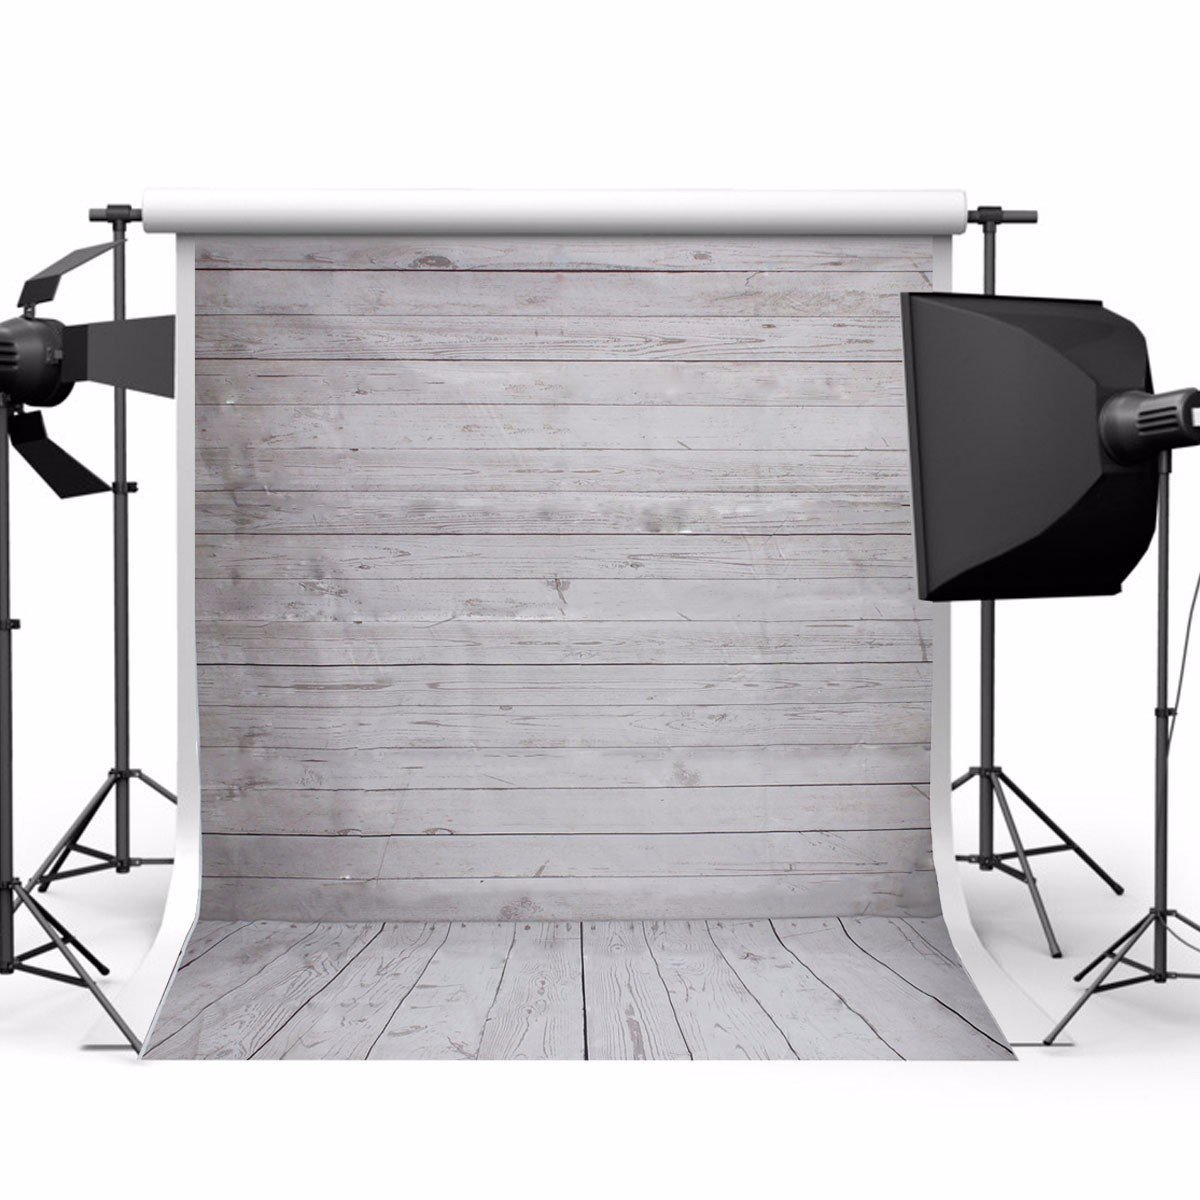 5x7ft Wood Wall Floor Studio Prop Photography Vinyl Background Photo Backdrop Best Price 5x7ft thin vinyl fabric computer printed photography background wood floor photo backdrops for photo studio fotografia 176